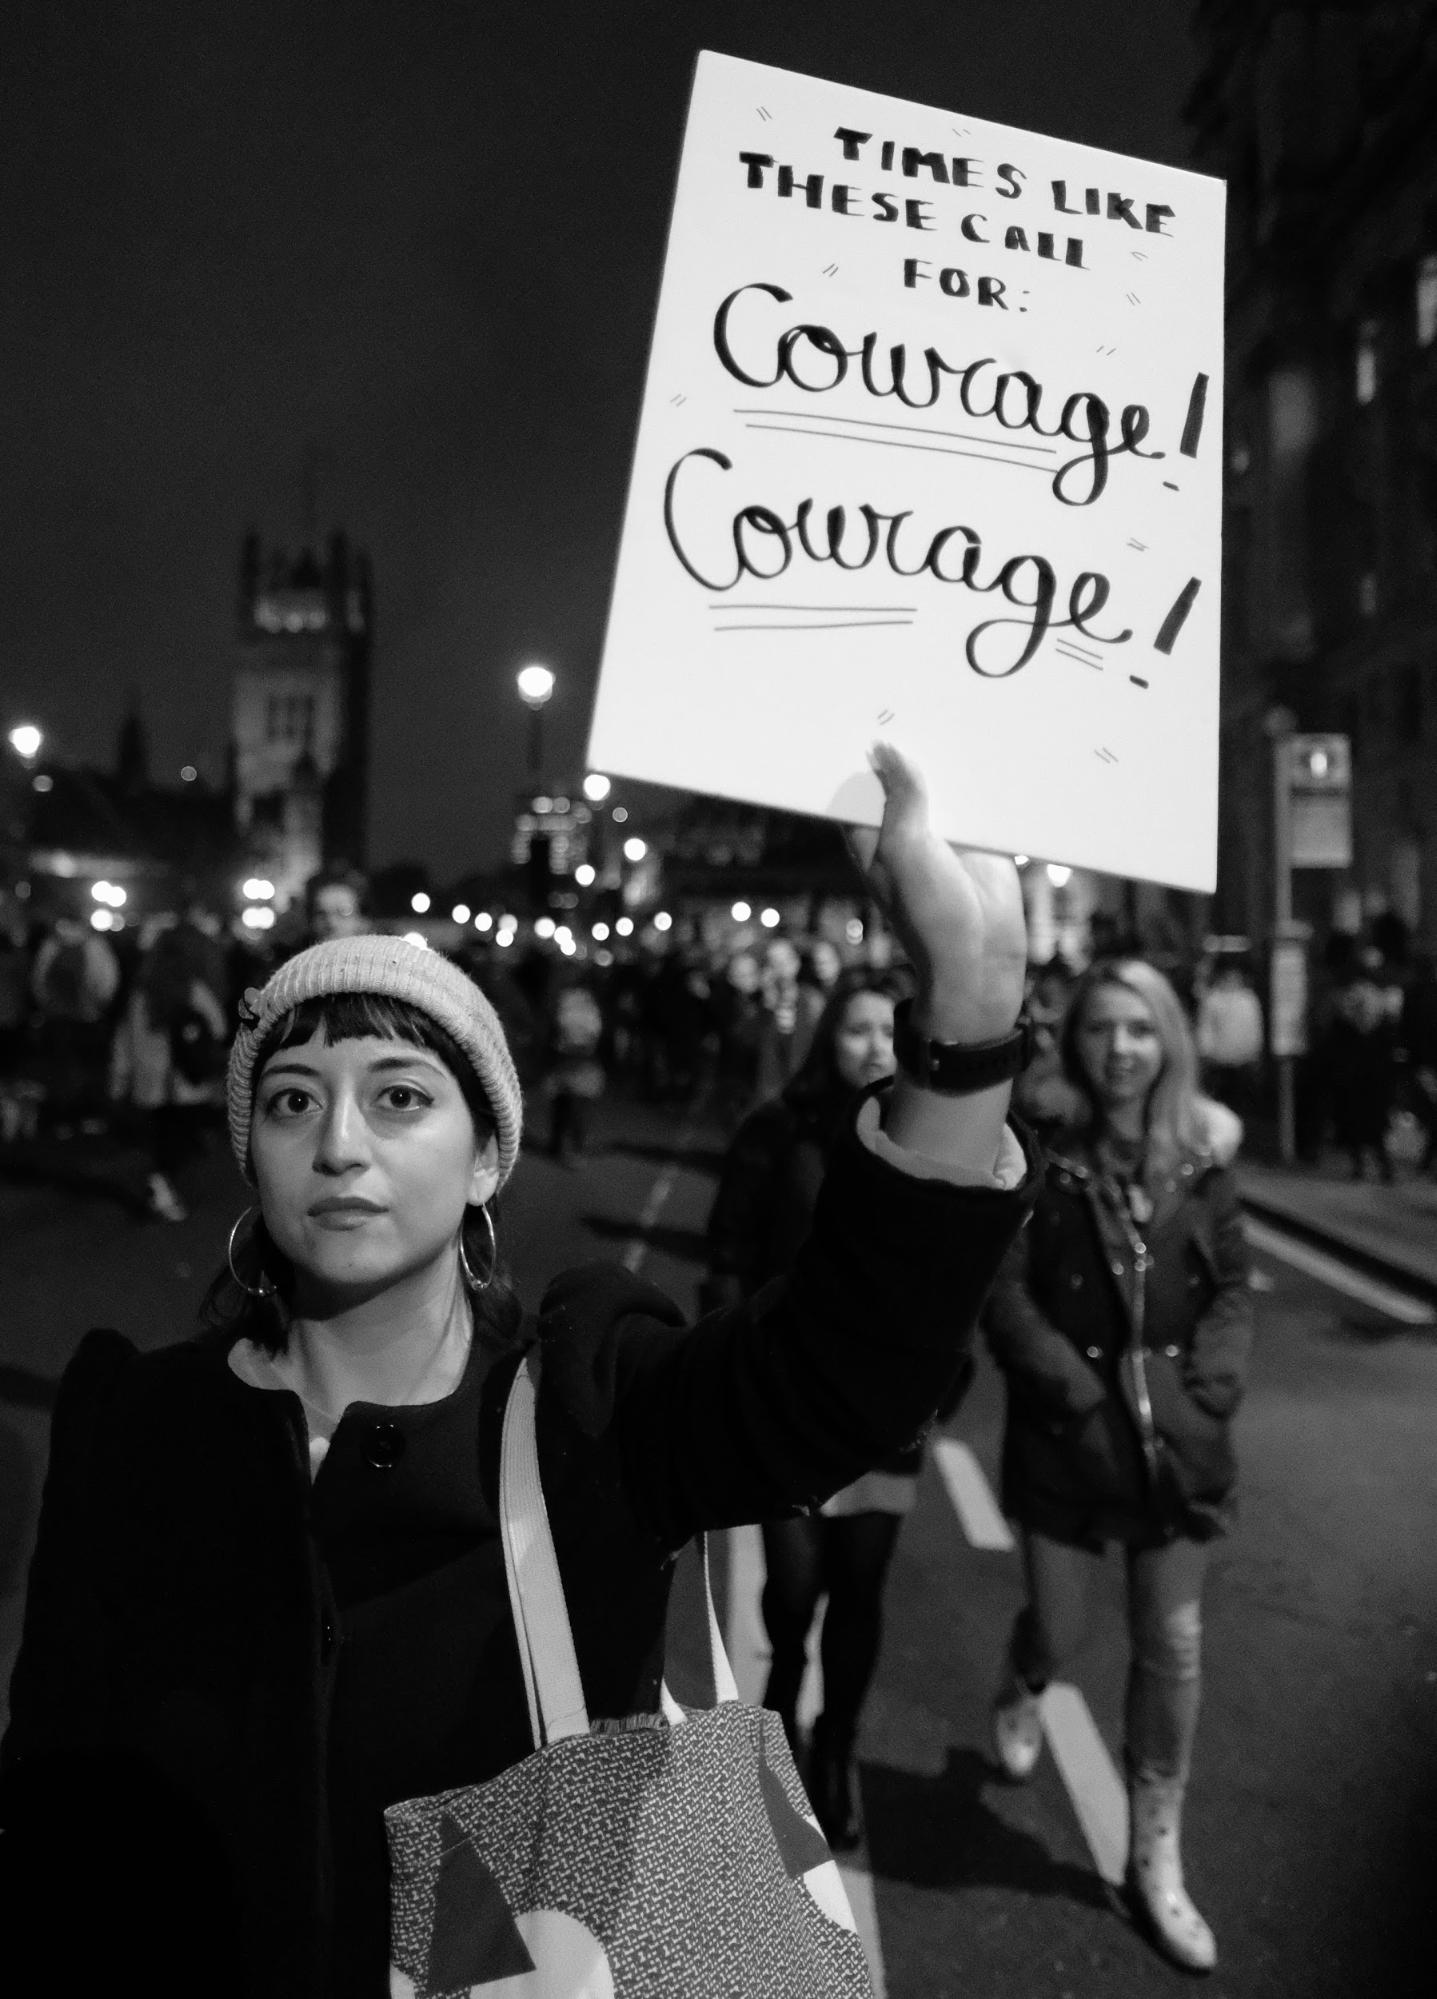 "A woman in a march holds a sign saying ""Times like these call for courage! Courage!"""